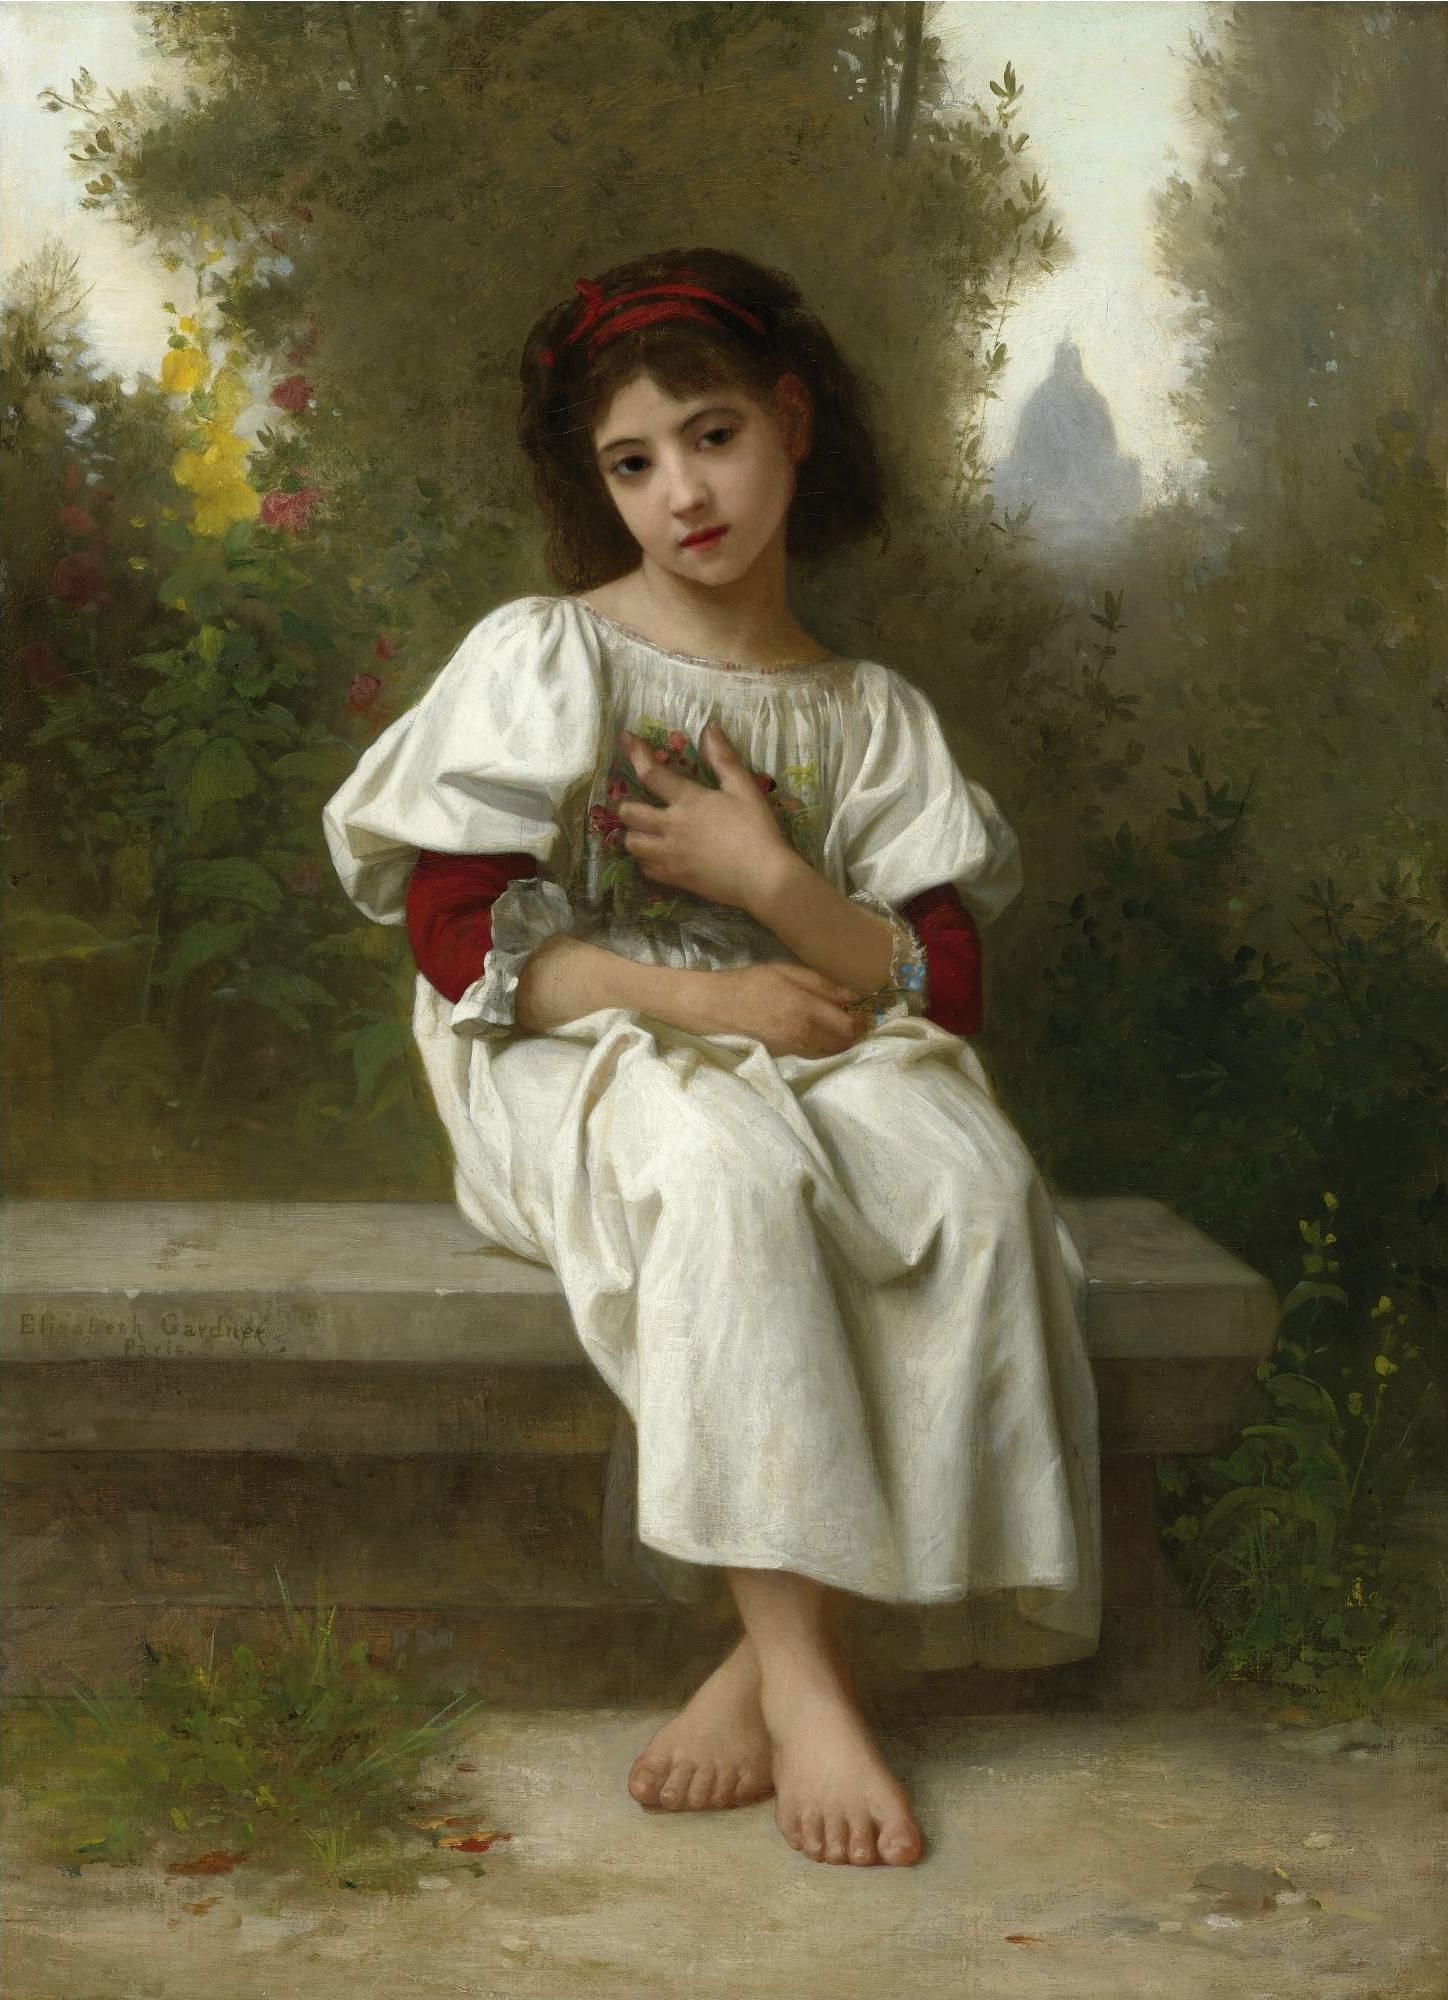 Whisperings of Love Painting by William-Adolphe Bouguereau